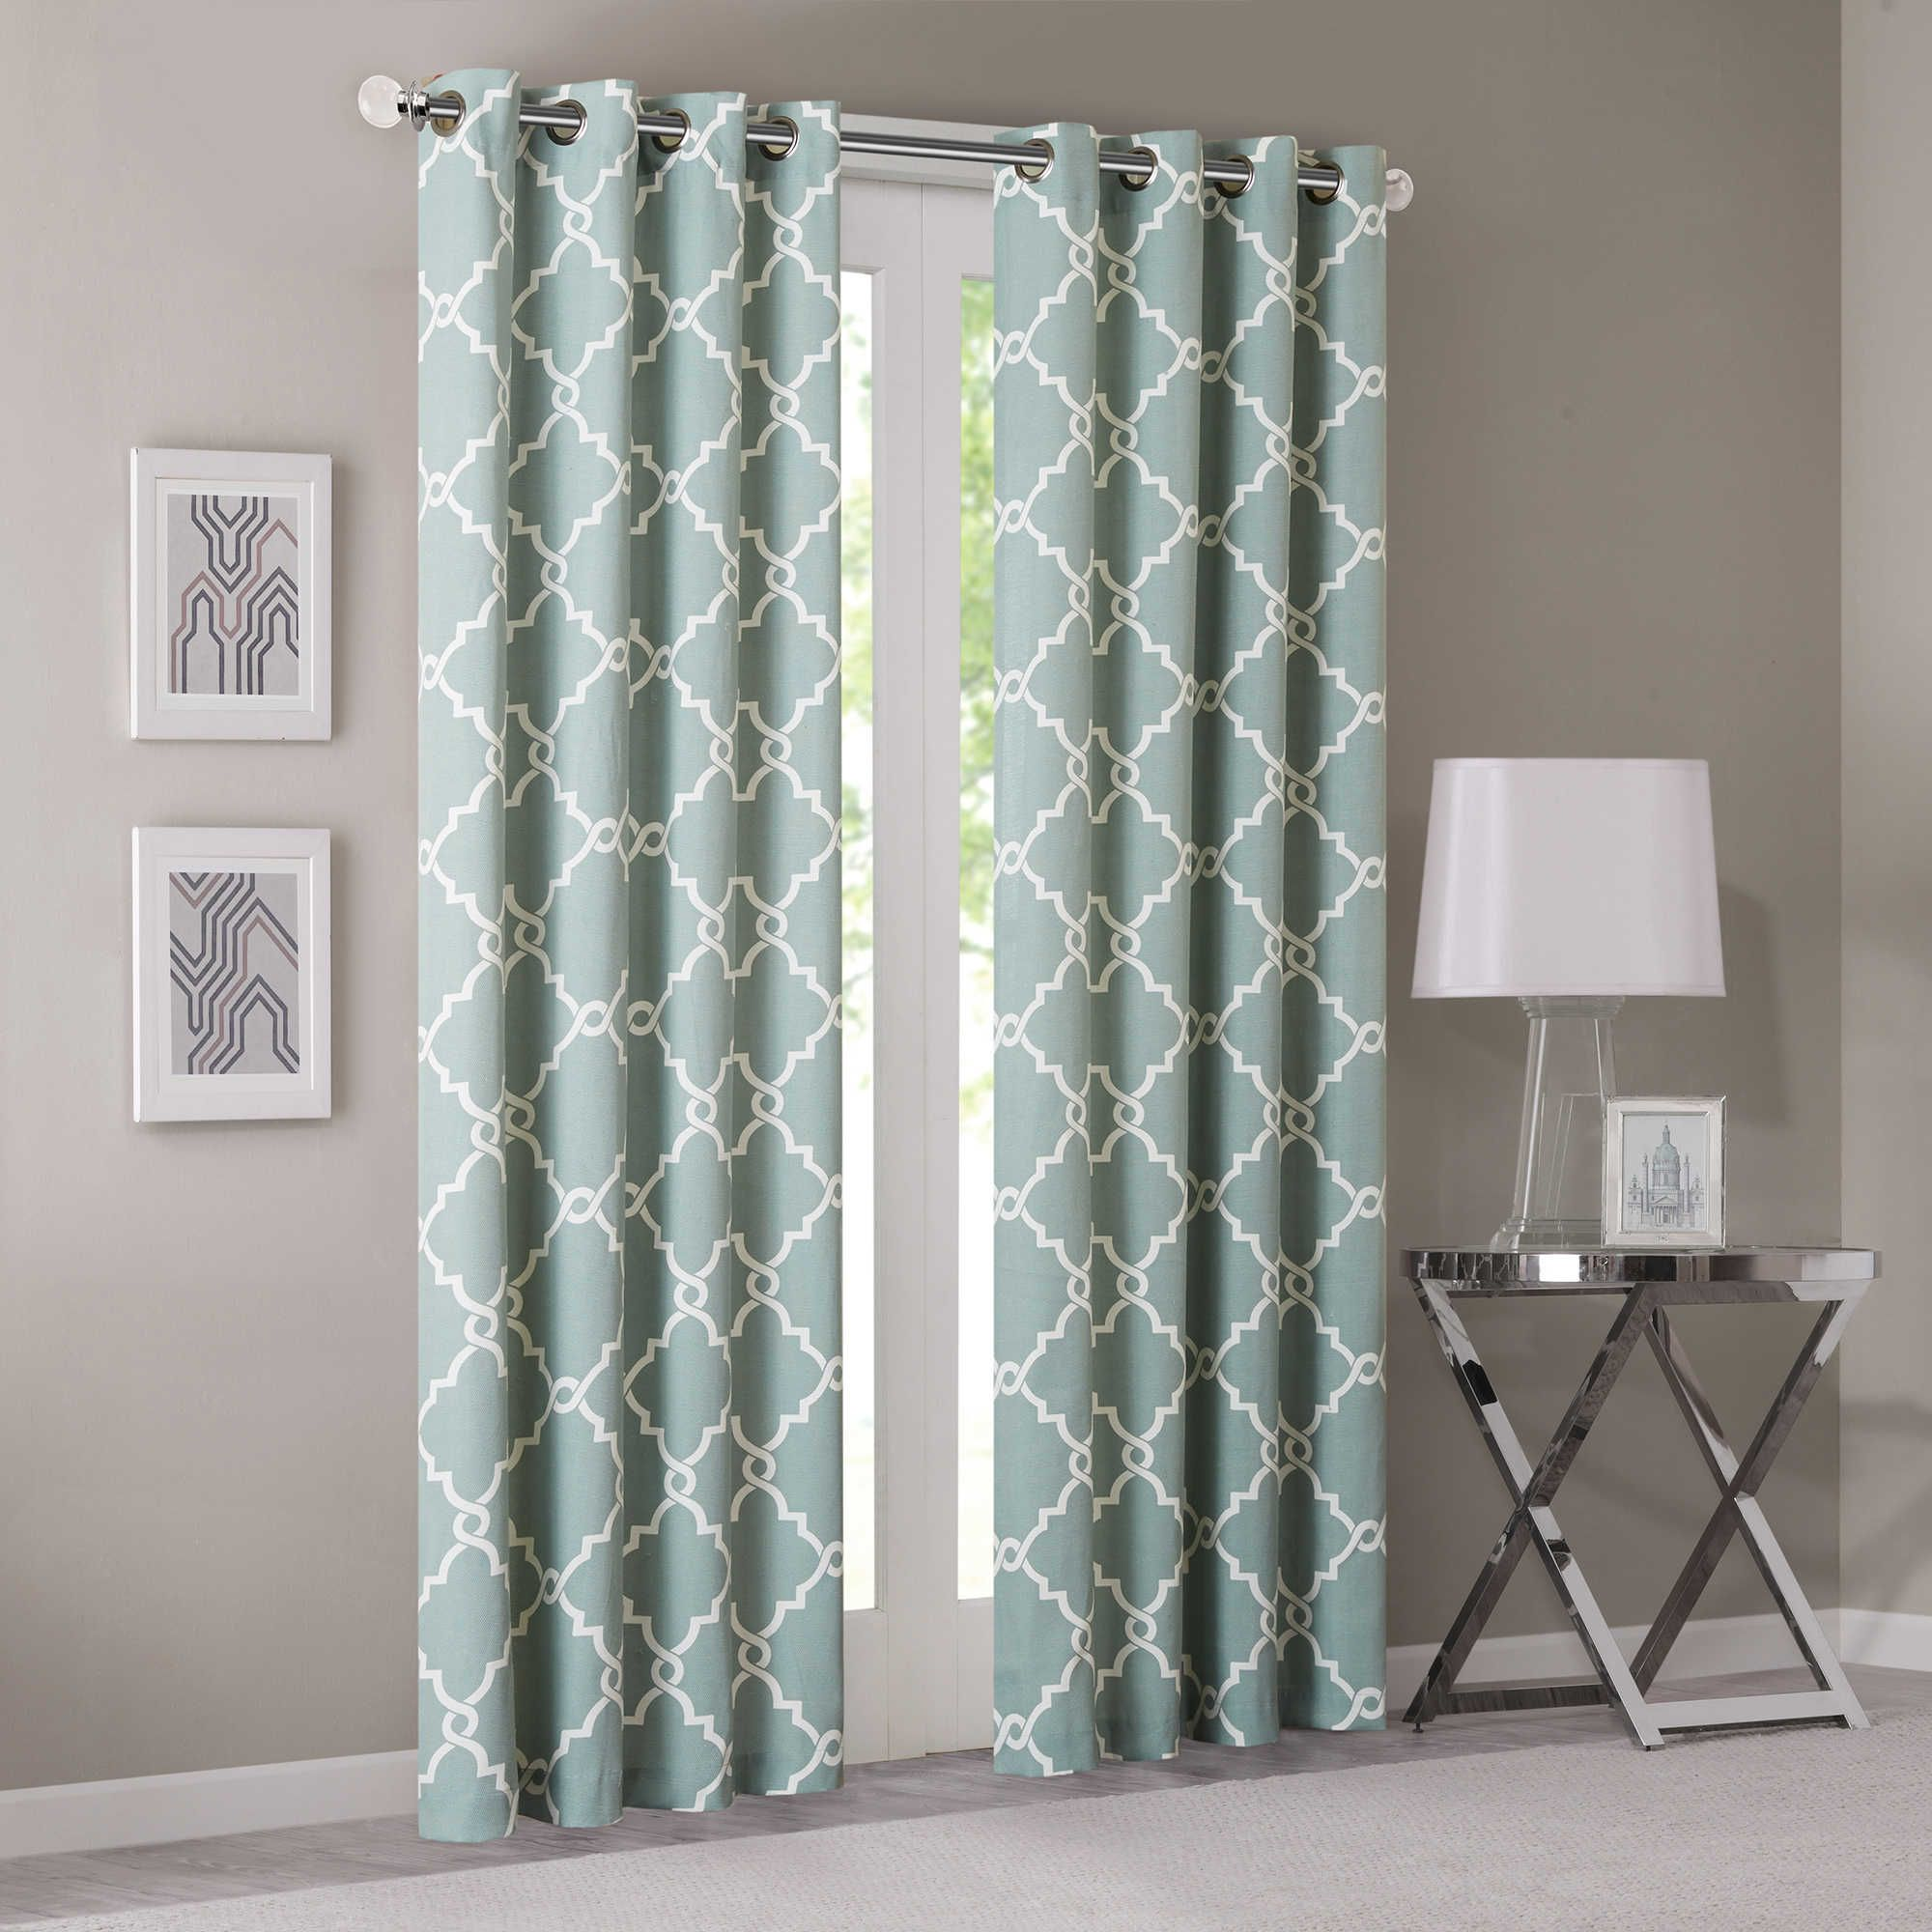 and pleasing with places for curtain them new but the only not better room homes modern also decorative ones all interiors welcome loved their design curtains decornp of models living make decor stylish can unique year